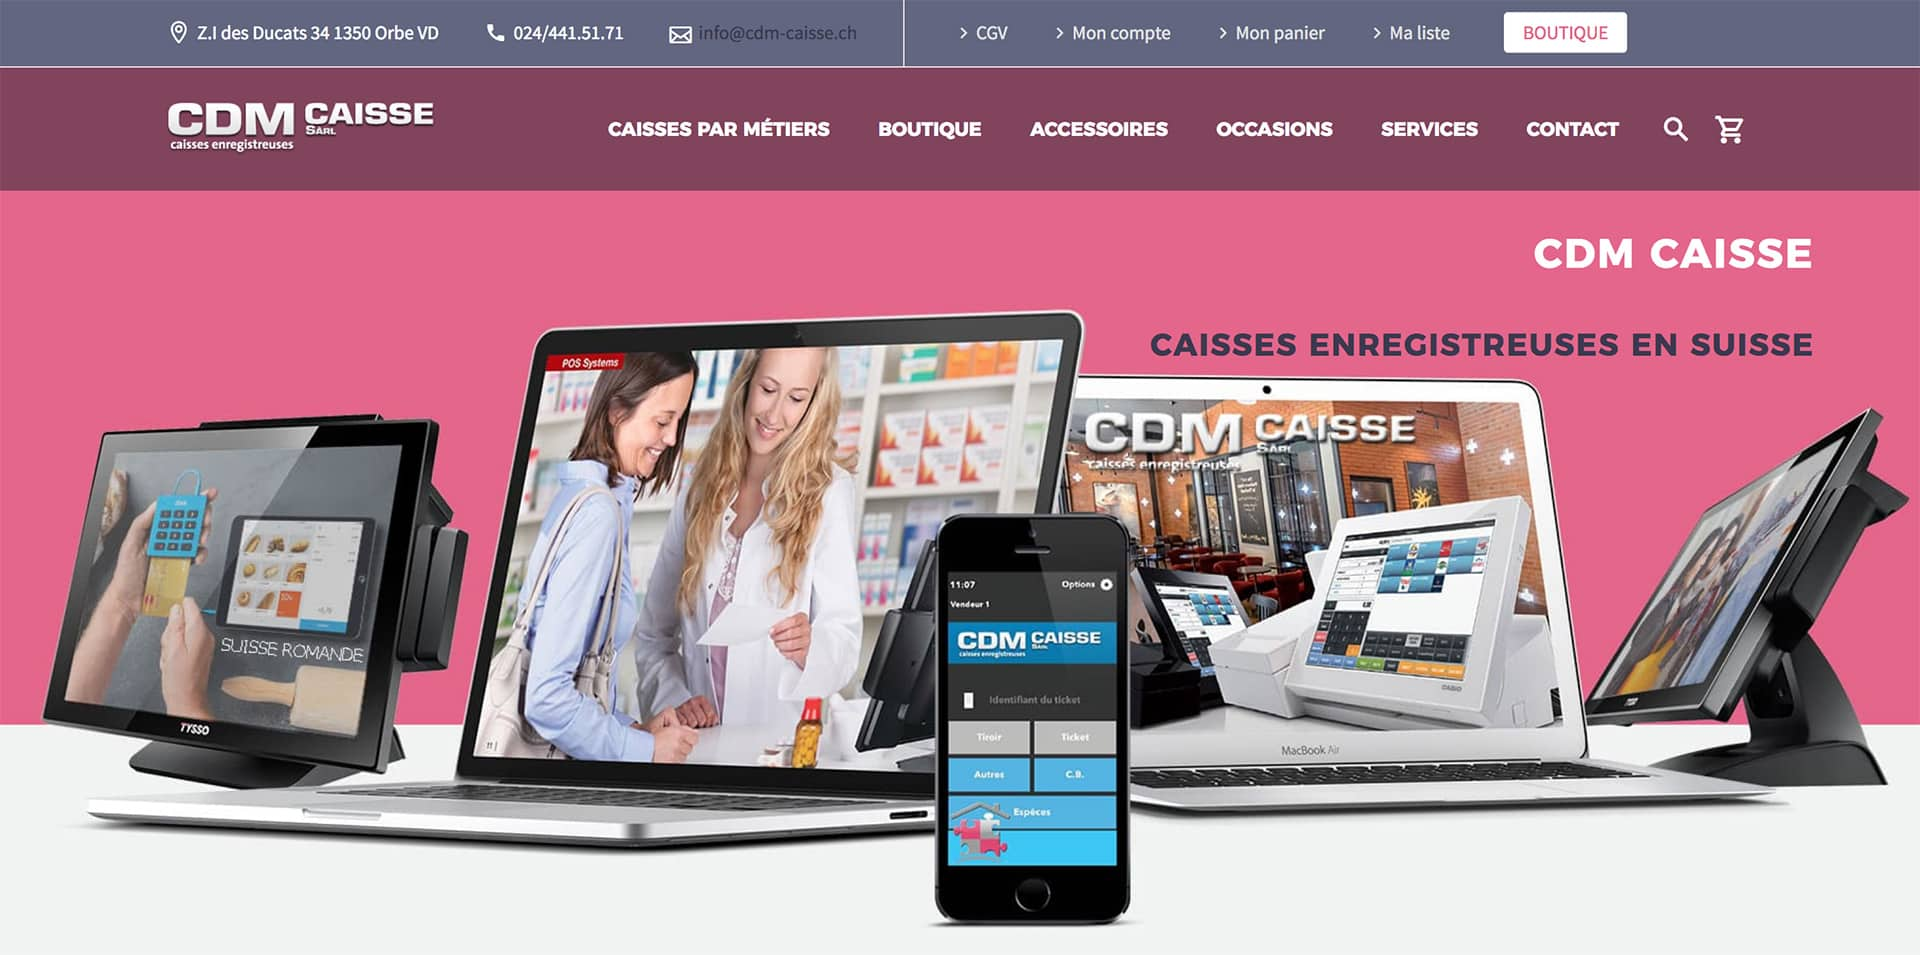 Cr ation de site internet vaud agence web de cr ation de site internet - Vente internet suisse ...